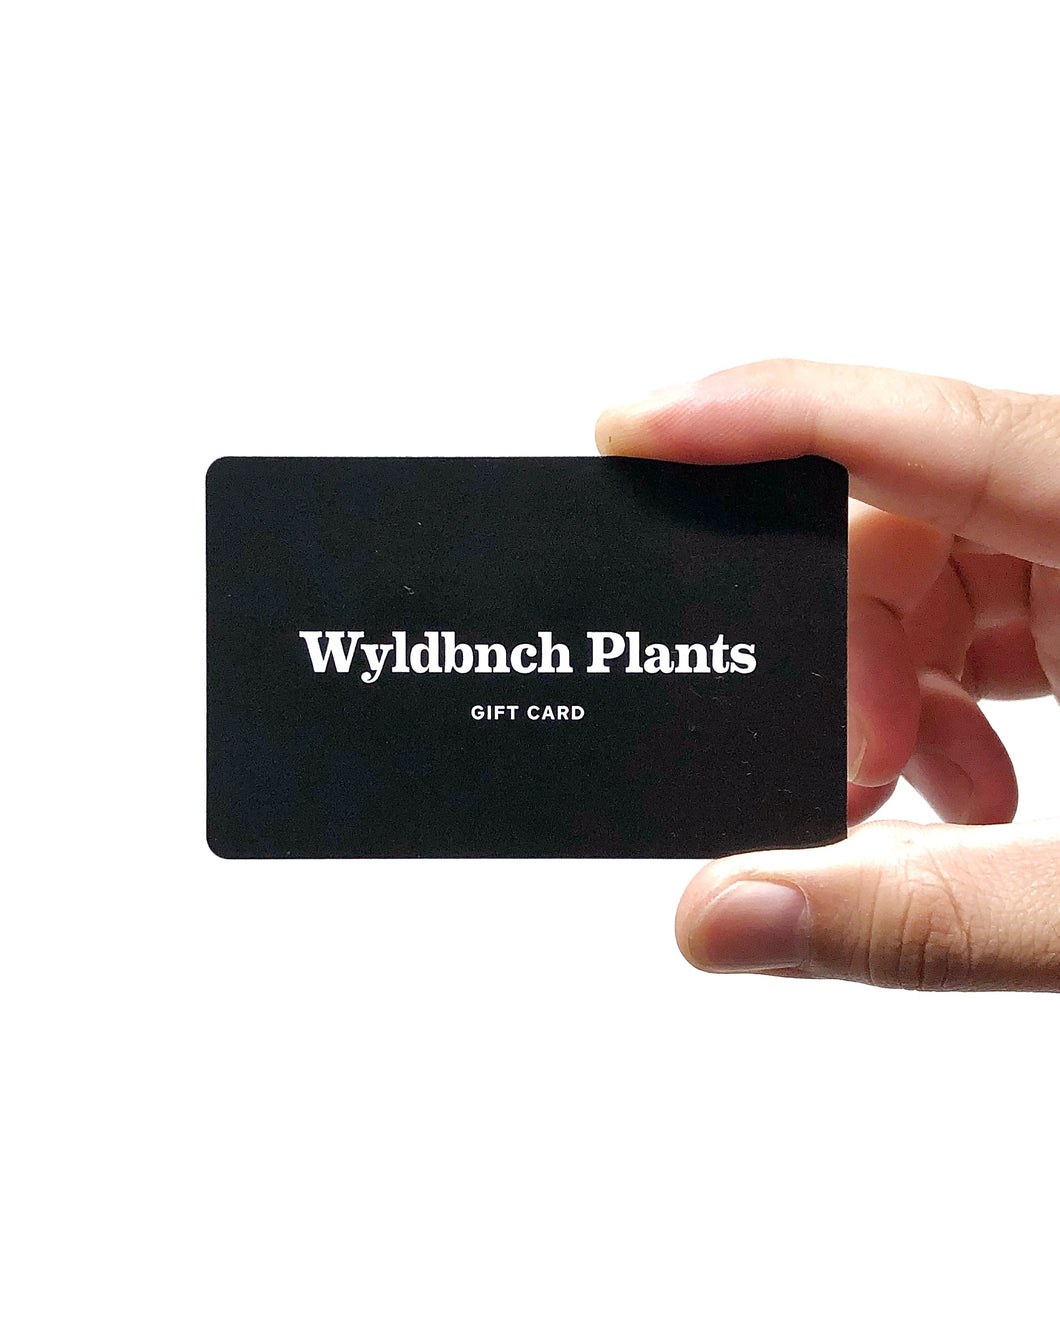 Wyldbnch Plants Gift Card